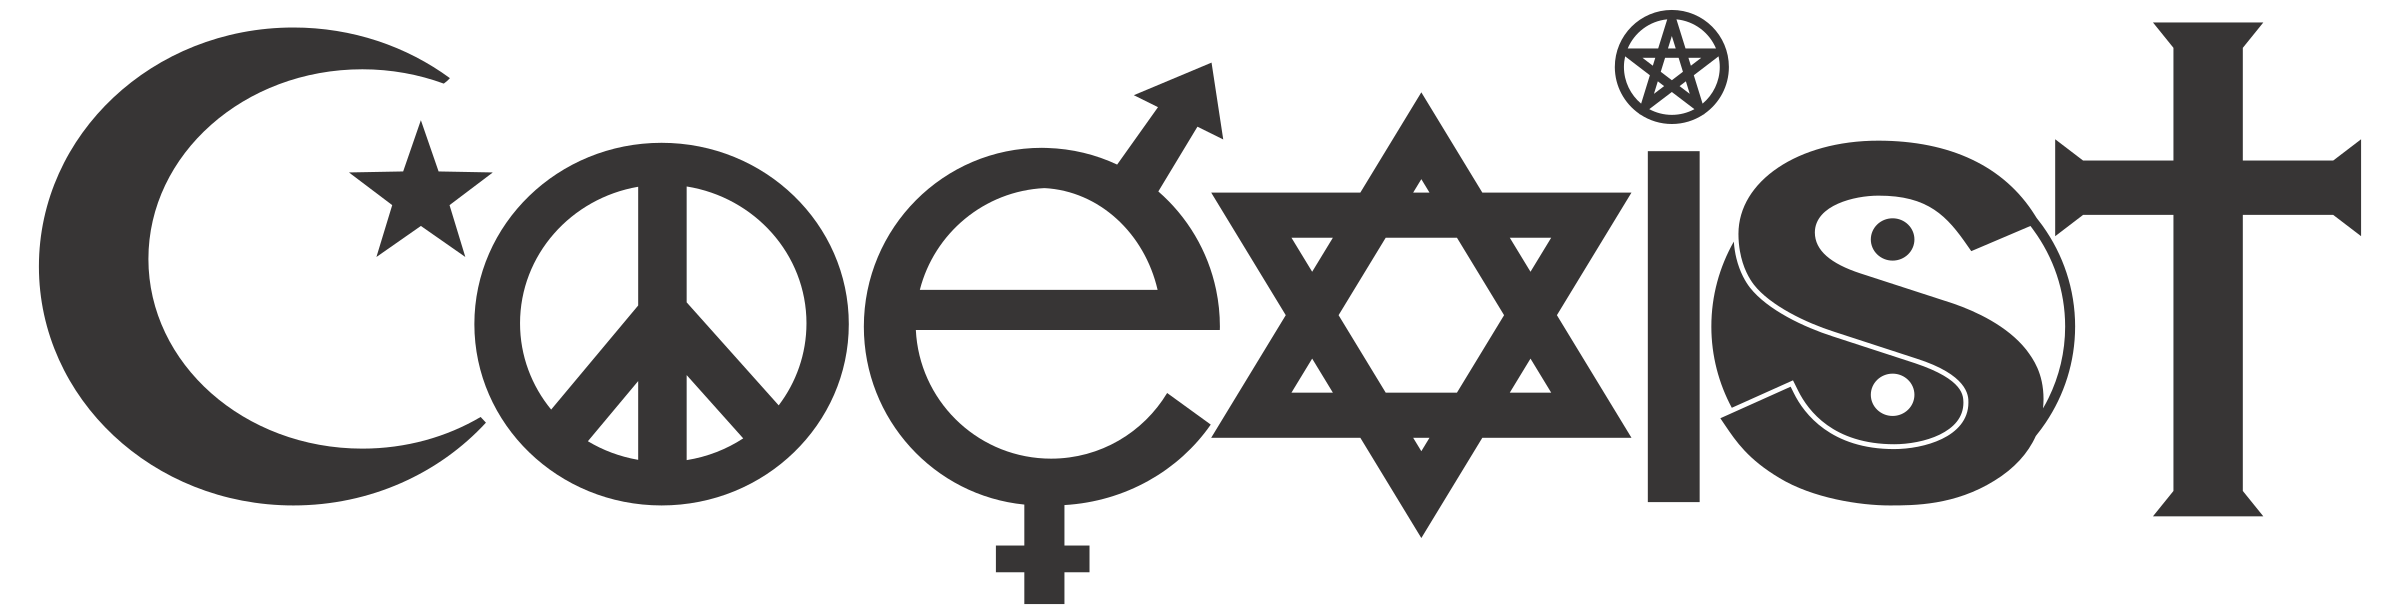 COEXIST-Original.png